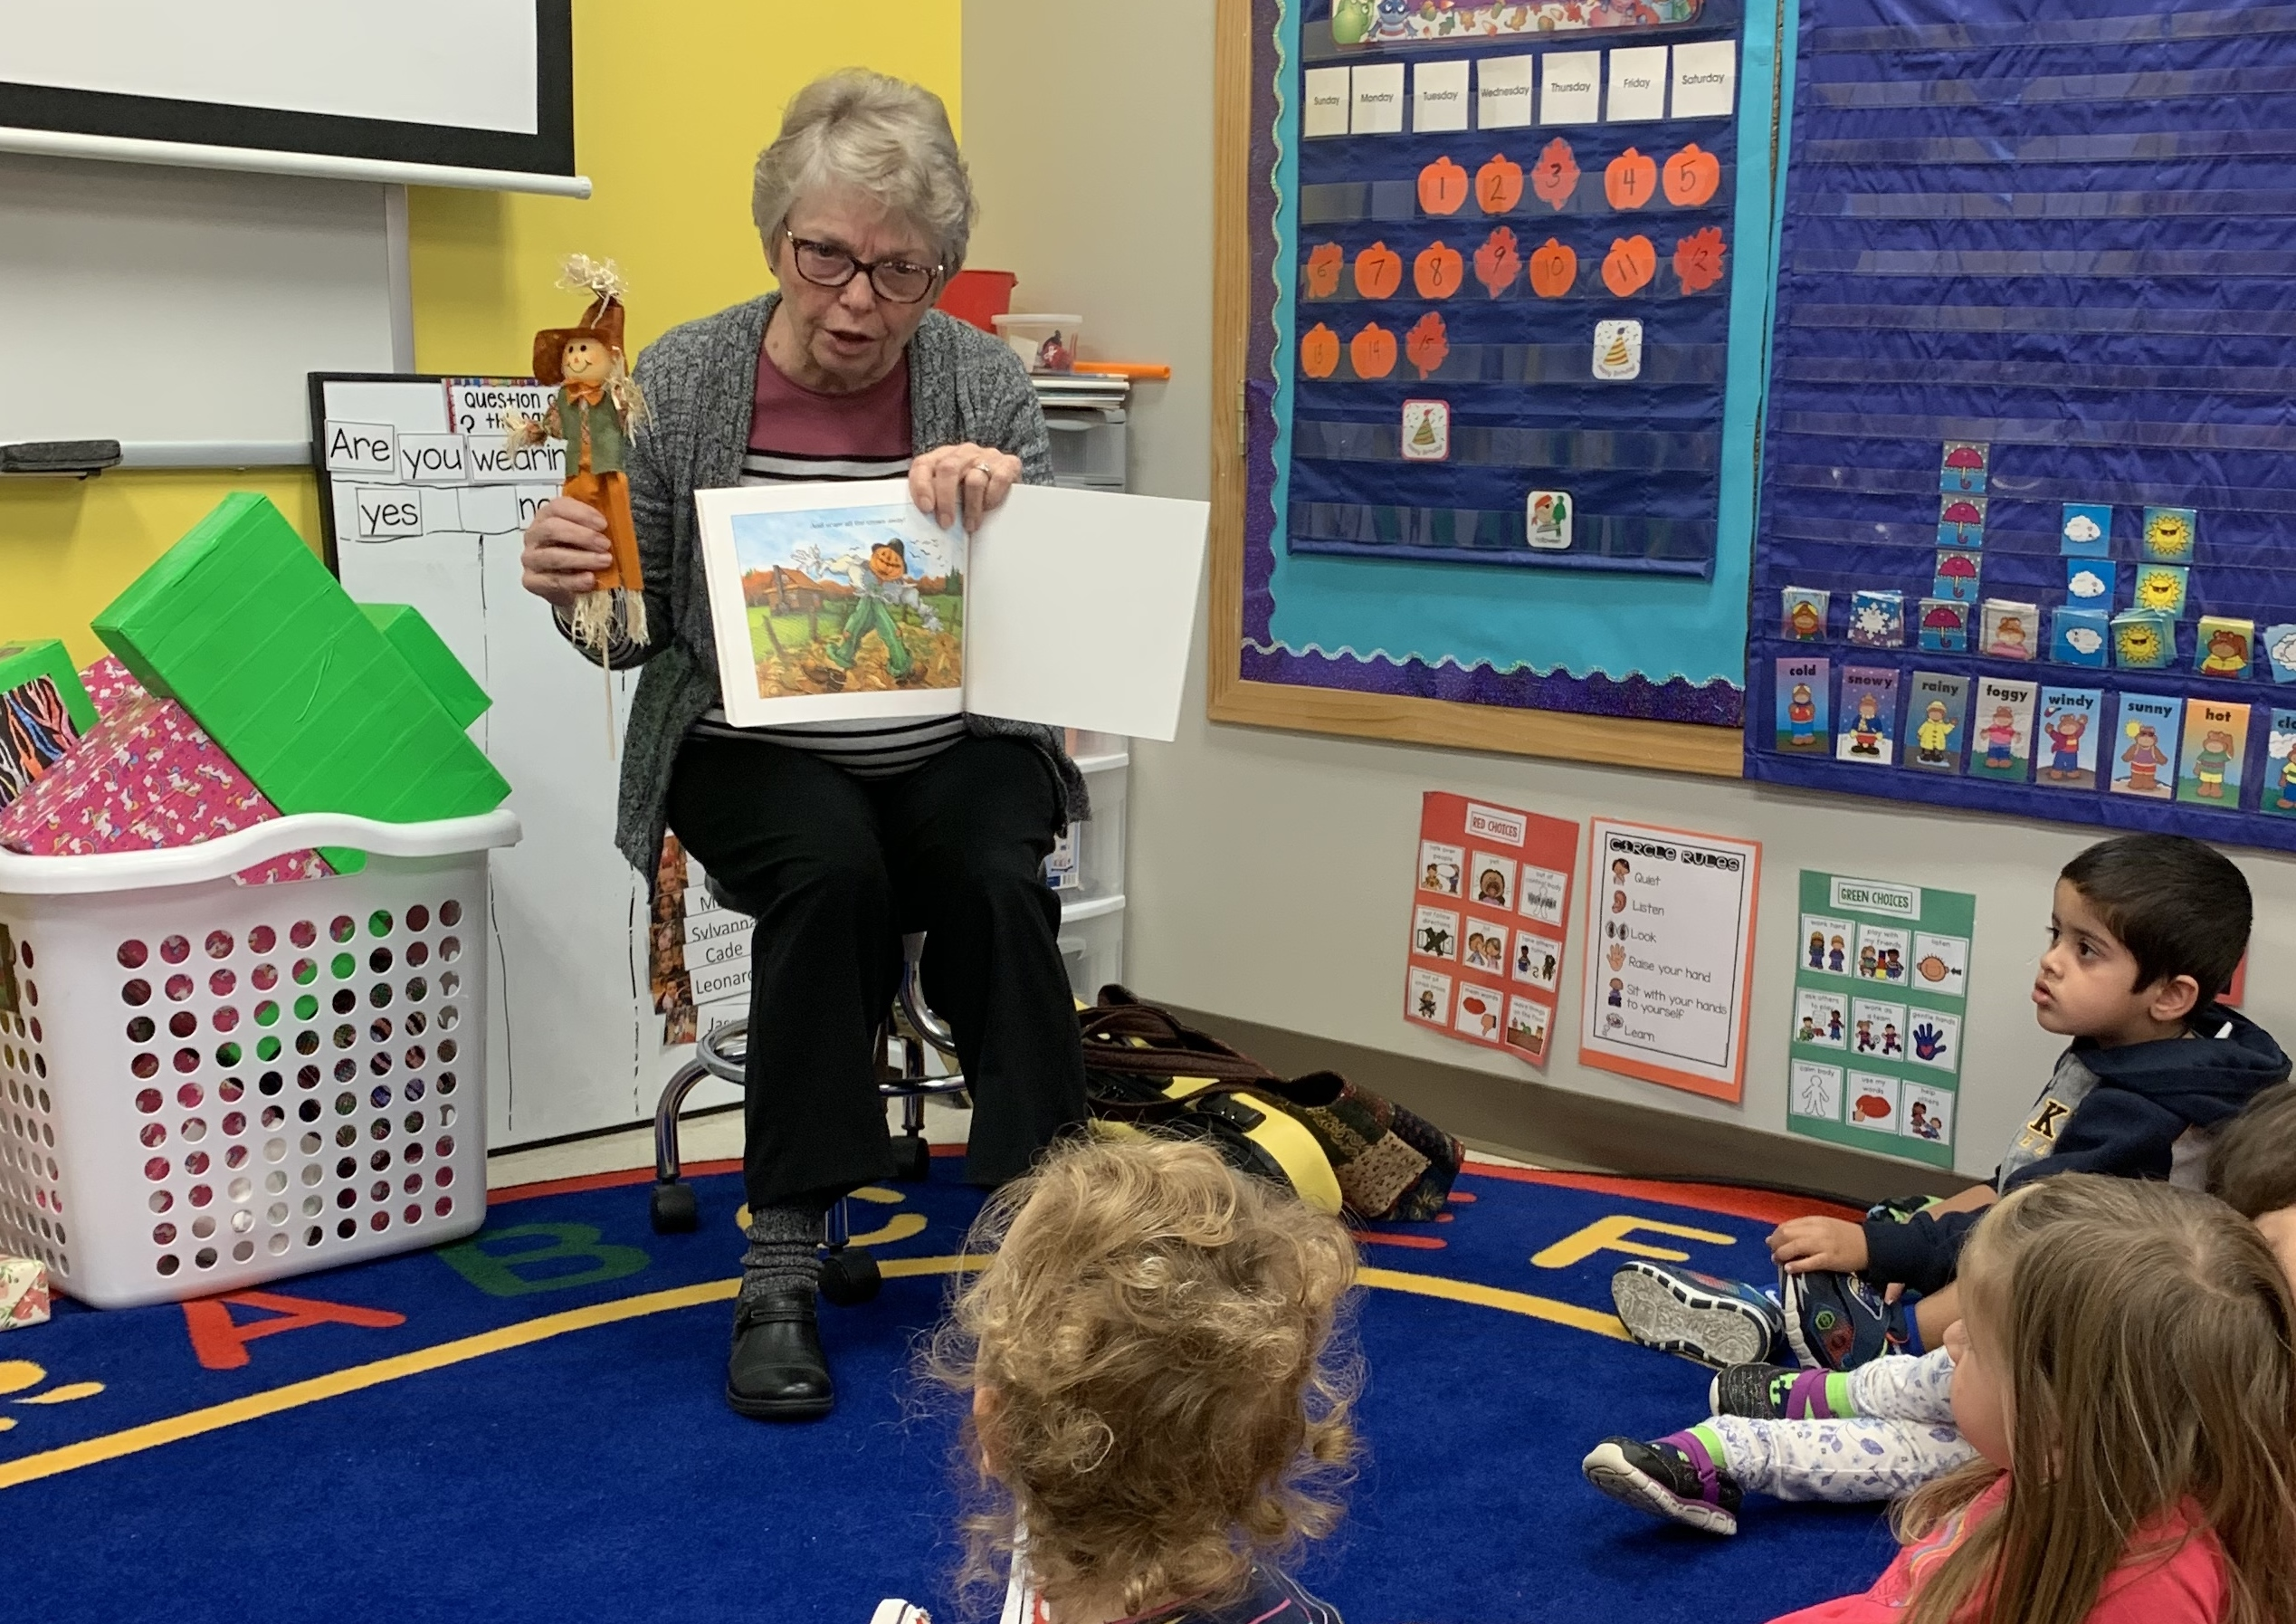 Ina Brixey, retired District 202 kindergarten teacher, reads a book to preschool students at the Ina Brixey Center in October 2019. The center opened in August 2019 and was given a Gold Circle of Quality from ExceleRate Illinois. The rating grades preschool facilities on a variety of items including teaching methods and physical space setup.